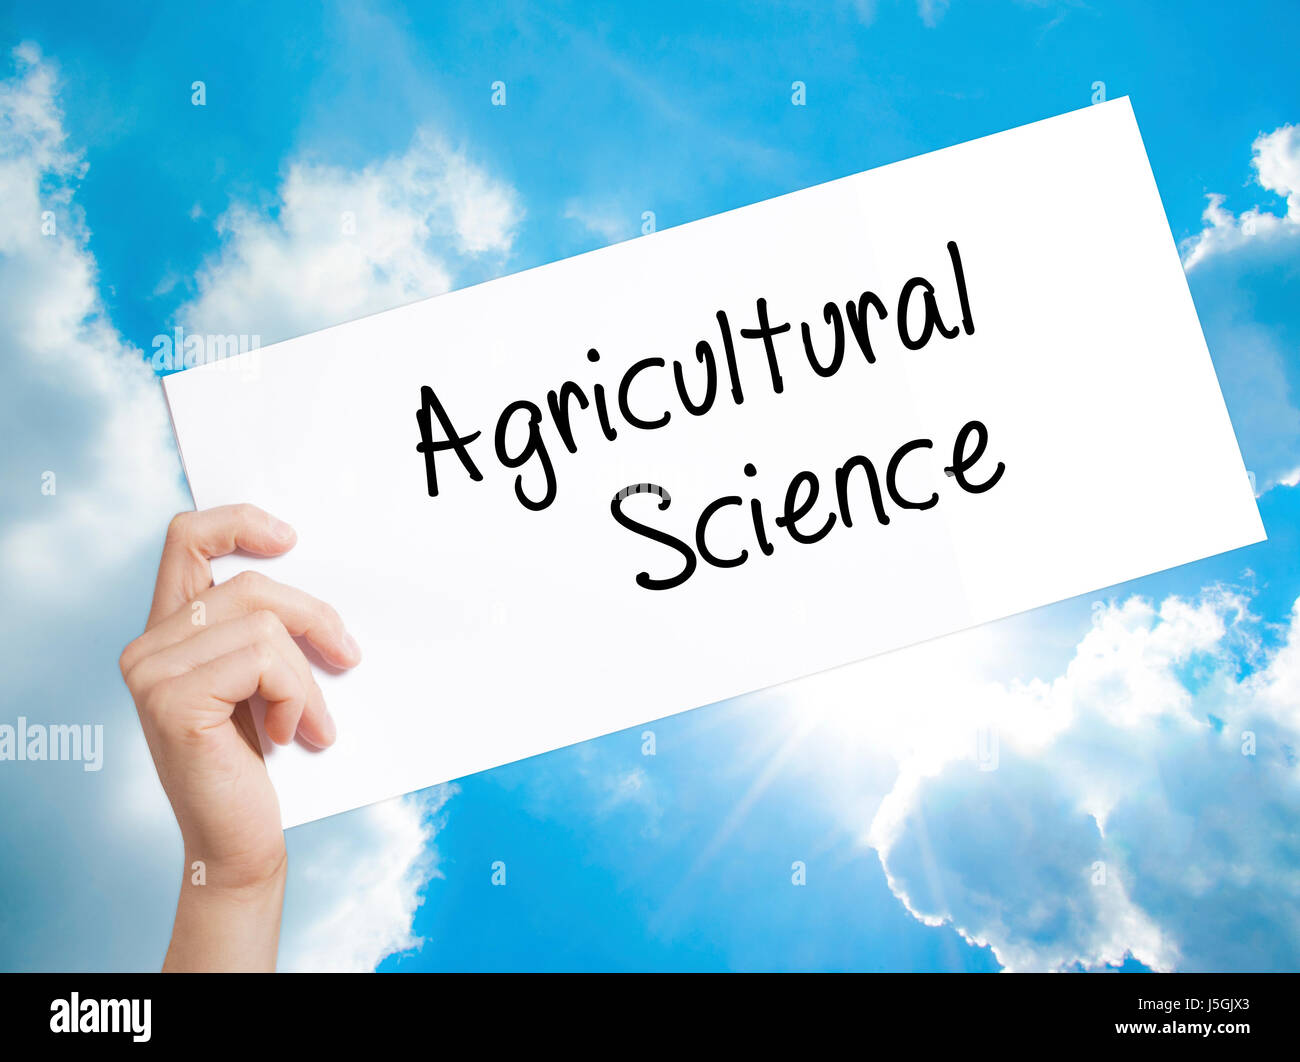 agricultural science Online shopping for books from a great selection of food science, horticulture, animal husbandry, agronomy, soil science, irrigation & more at everyday low prices.